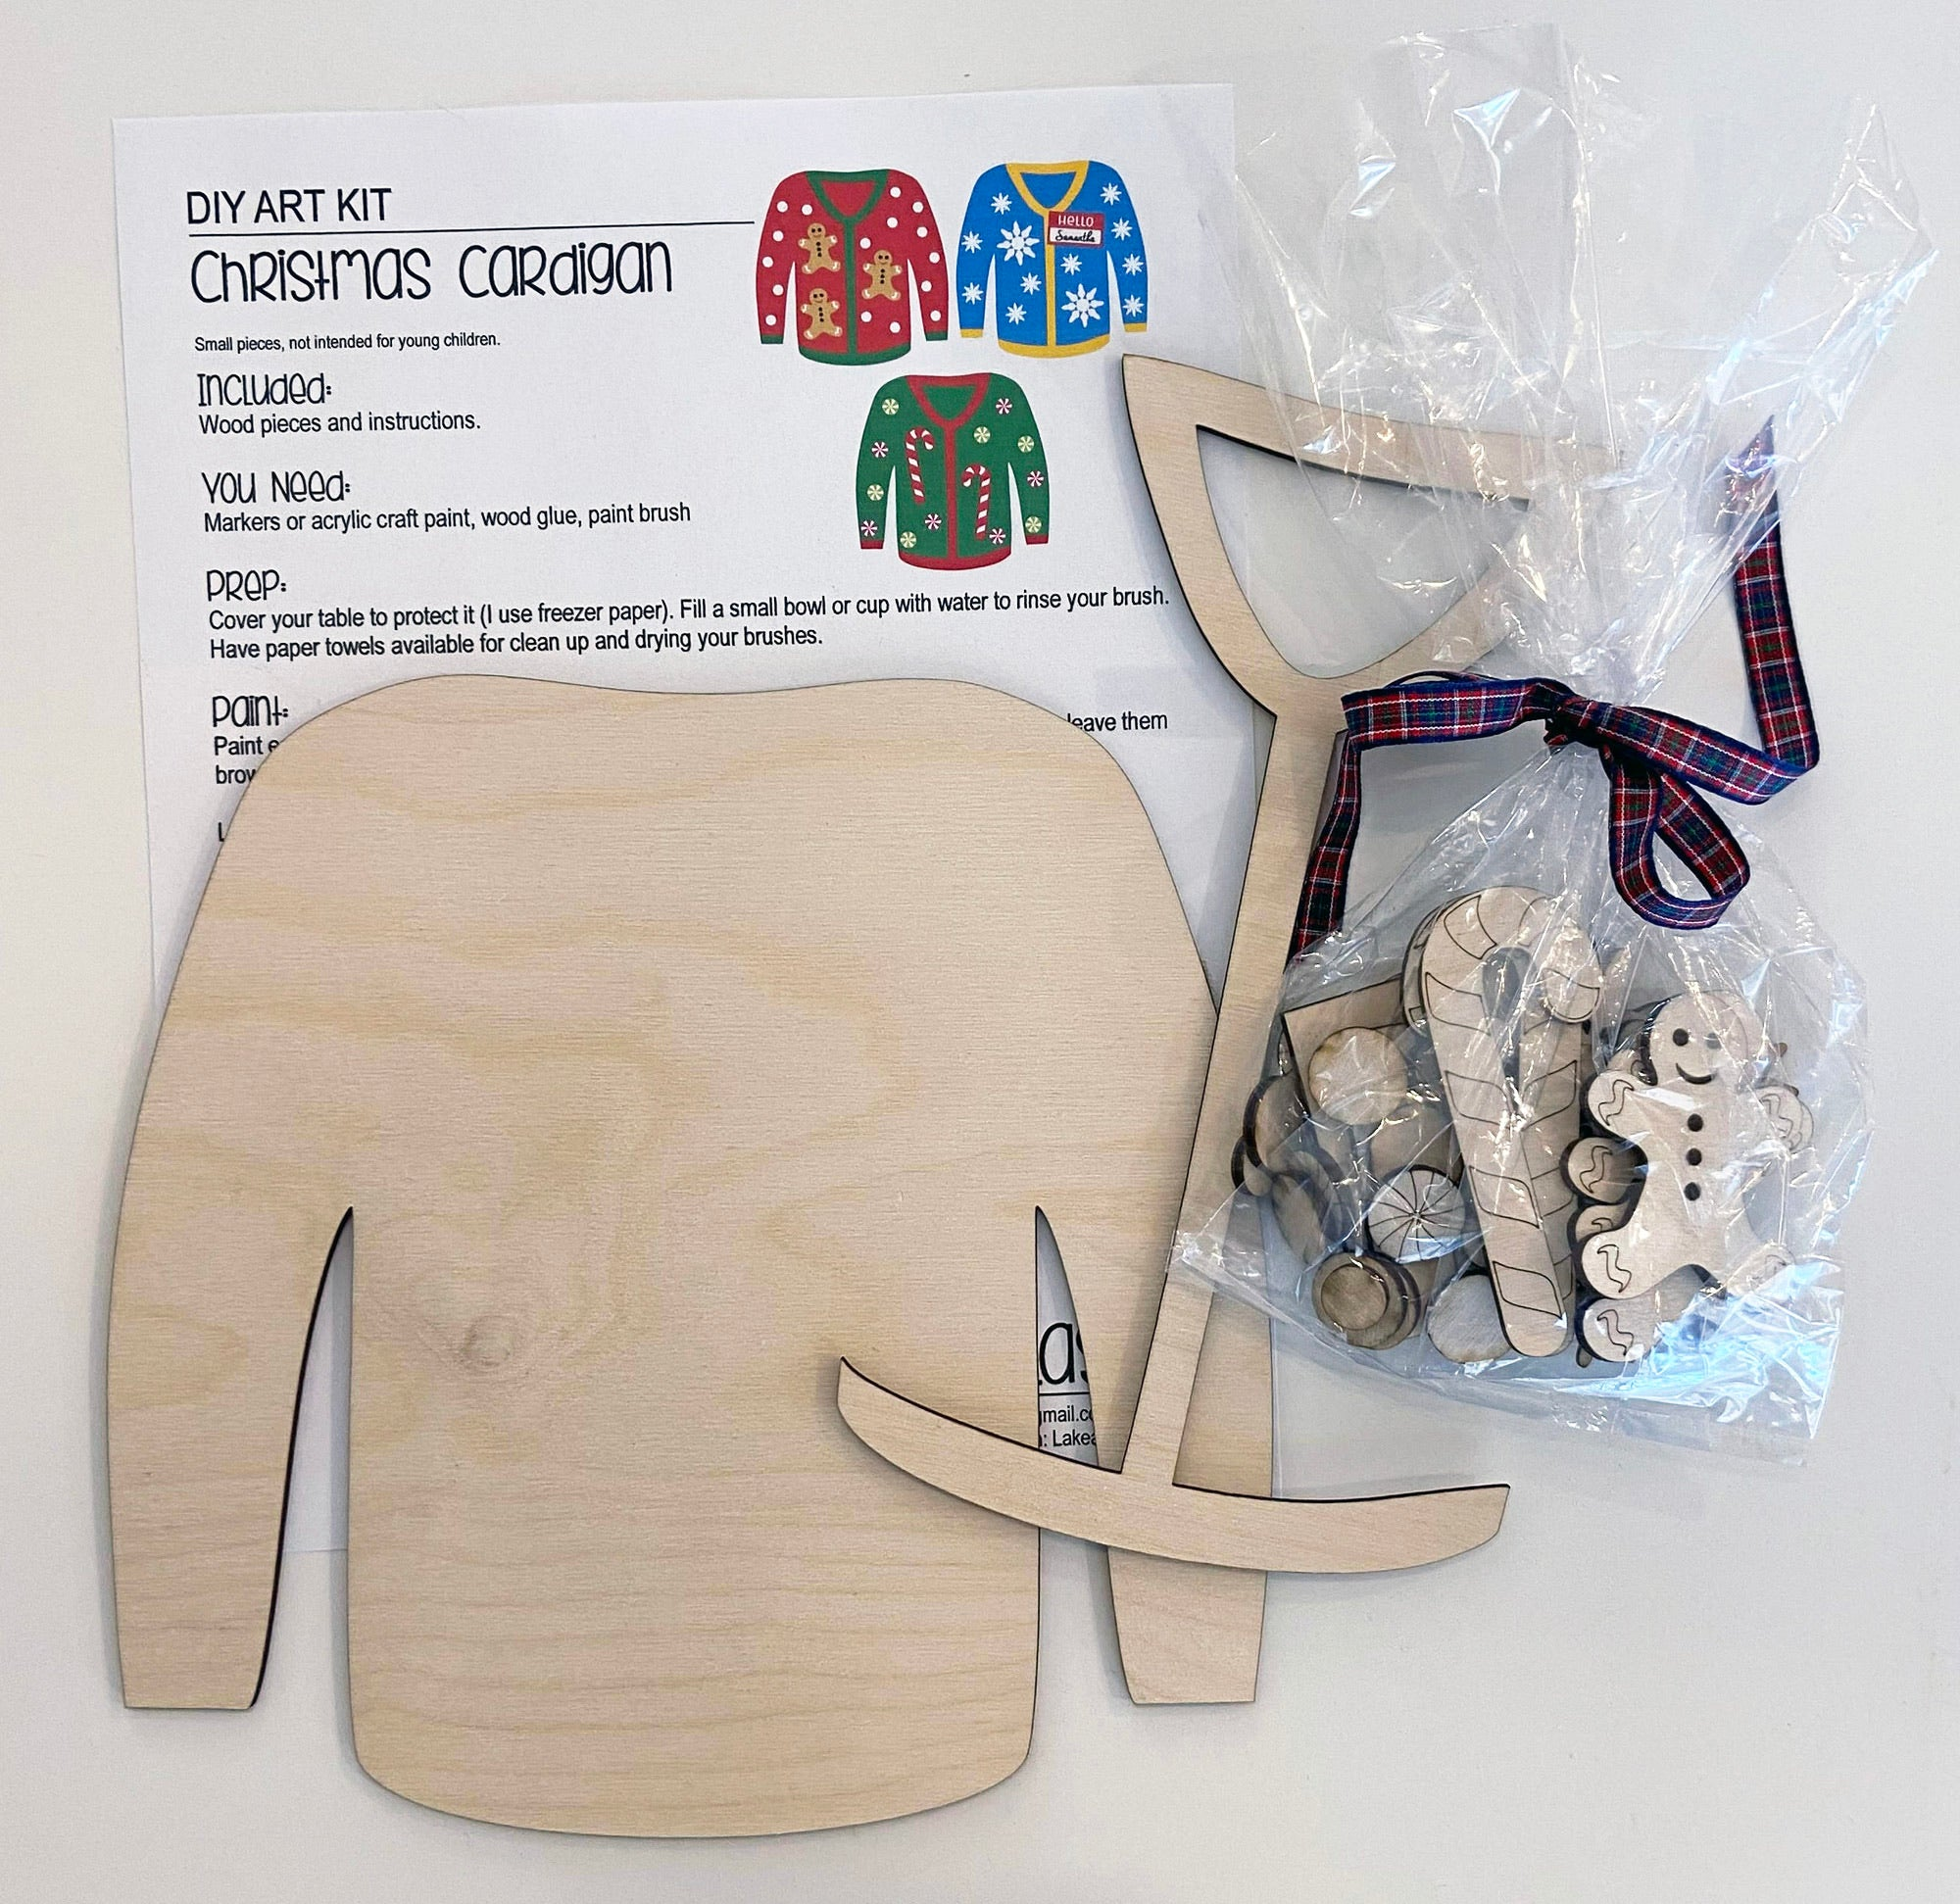 Cardigan Sweater - Ready to Paint Craft Kit